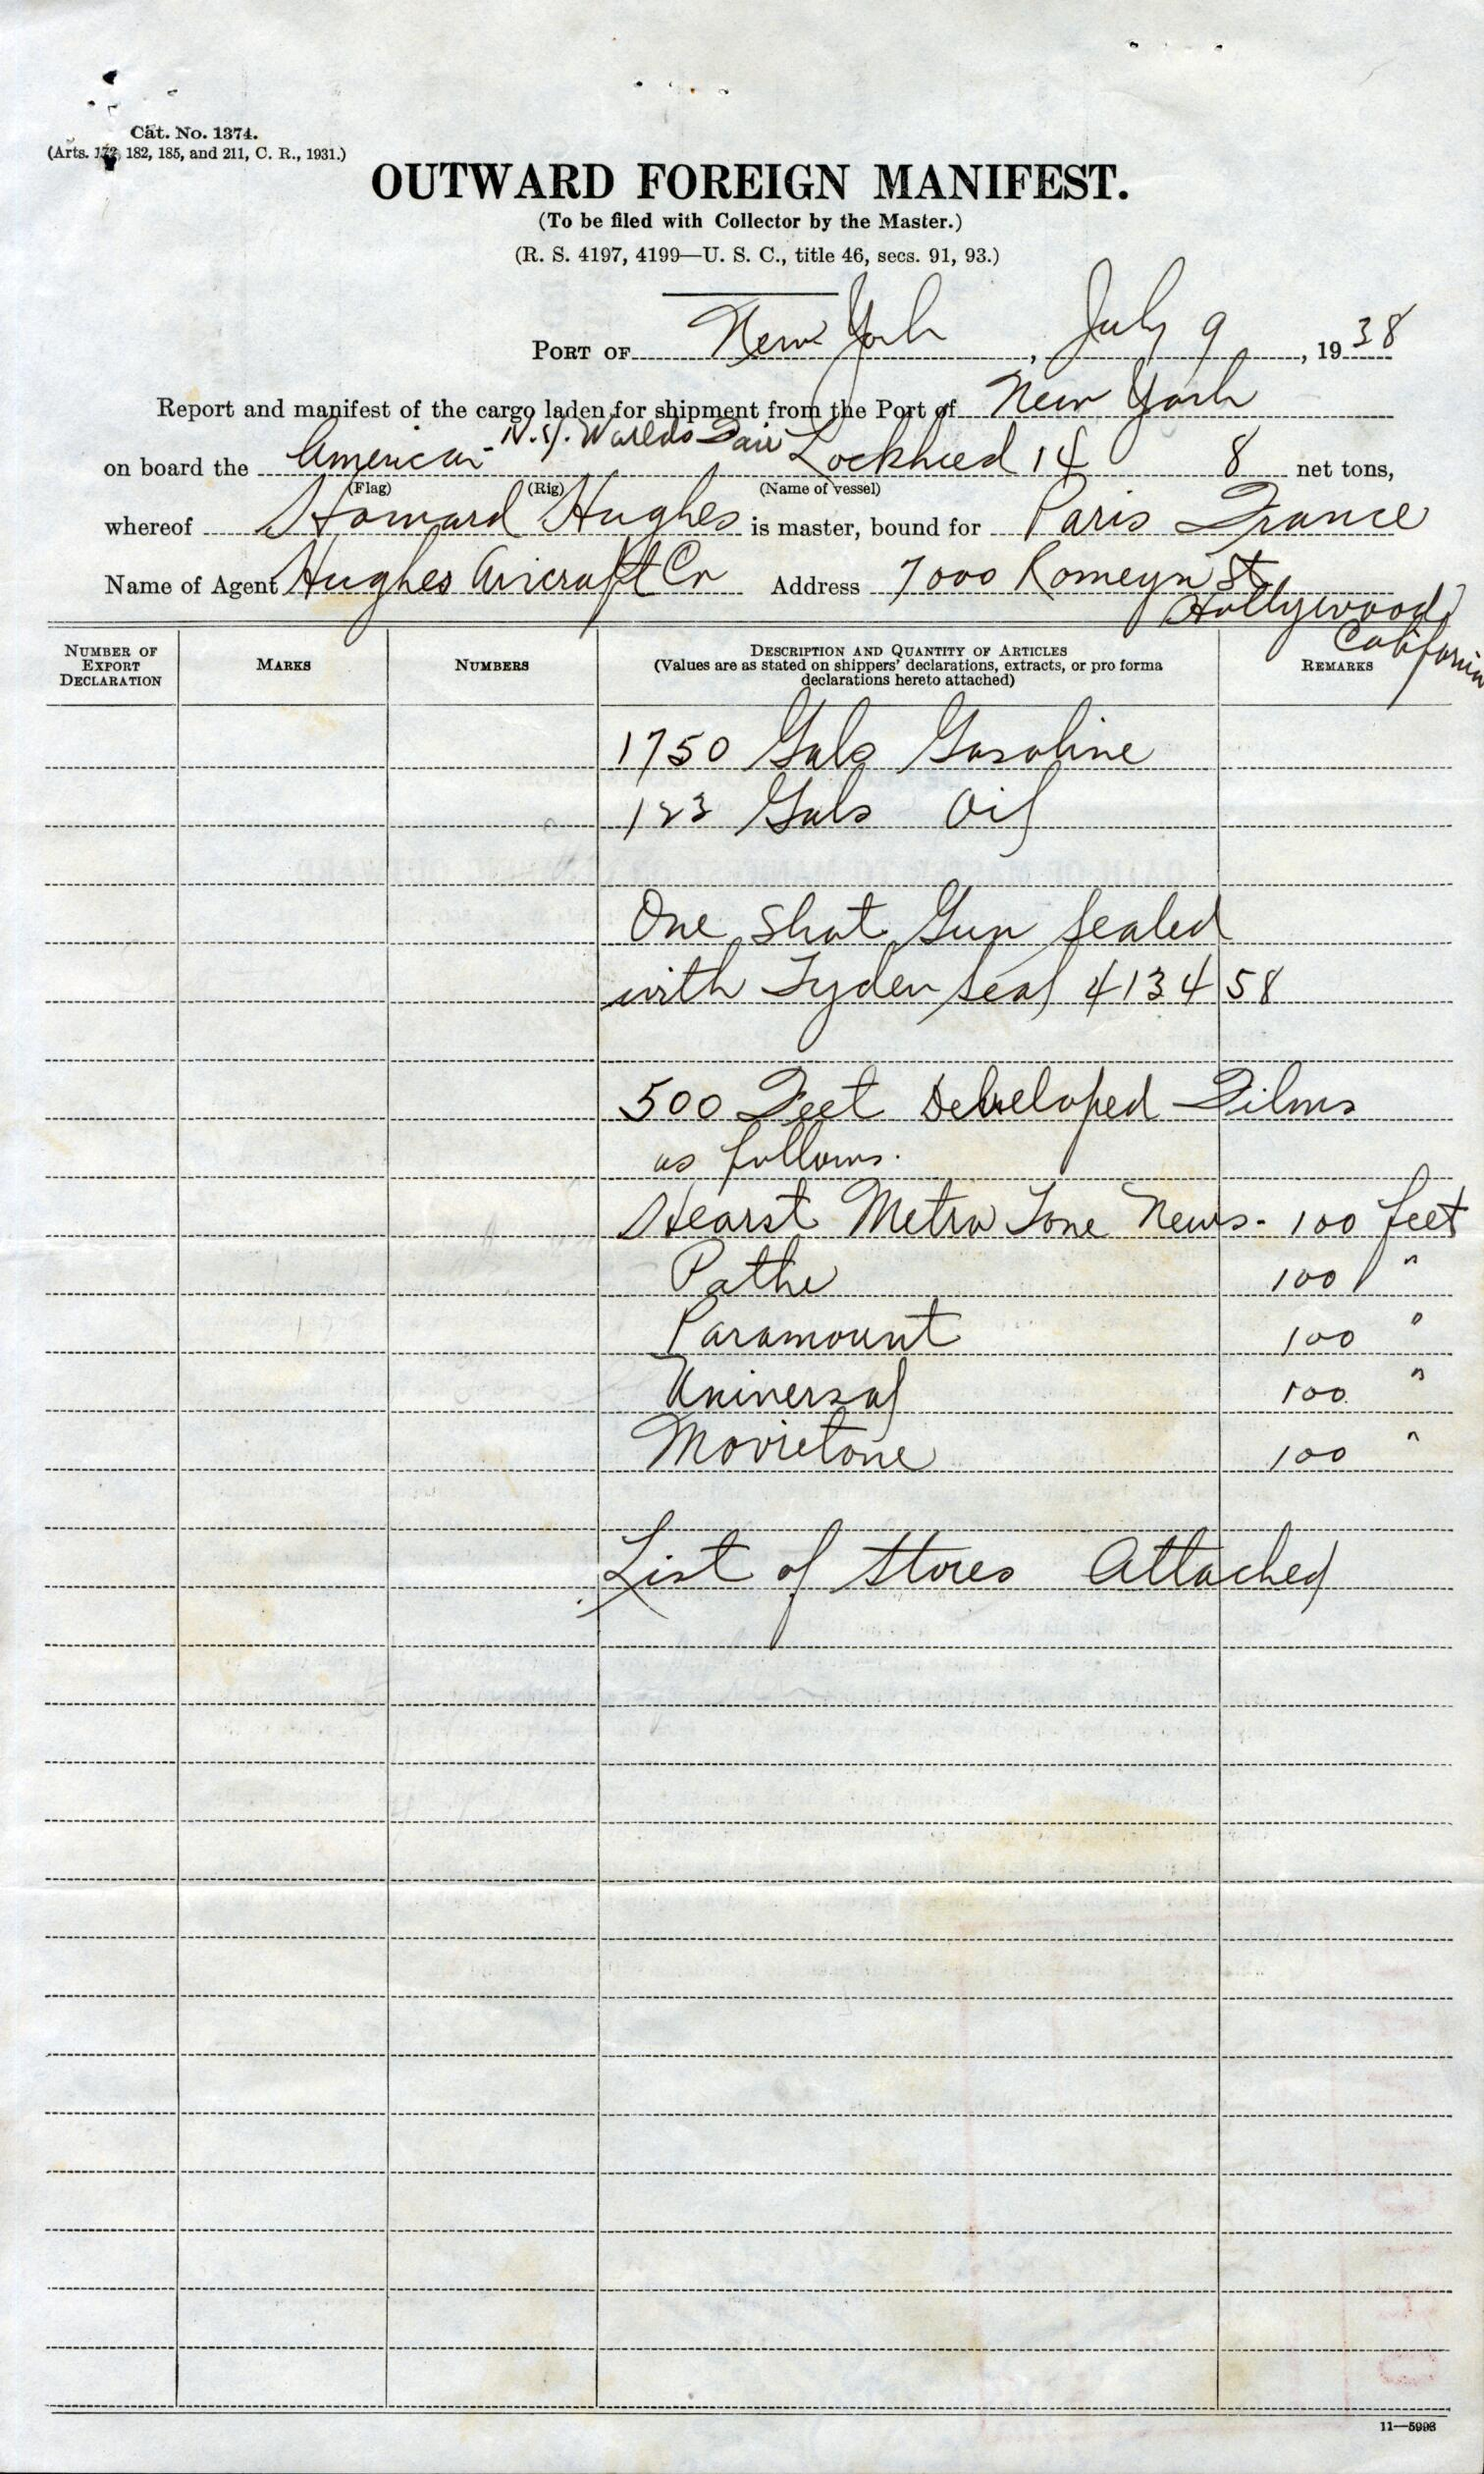 "The ""List of Stores"" is not attached to the Hughes manifest, but we can speculate on what he carried based on his advance requests for the landing sites. Detailed in his flight operations manual, at Paris, Hughes asked for ""15 gallons of Poland water in one or one half gallon bottles with unbroken seals, 12 quarts of pasteurized milk in one quart sealed bottles, 3 lbs. of fried chicken, 15 lbs. of dry ice, 5 gallons of hot coffee, ready to be poured in ship's thermos bottles, 5 hot dinners, individually packed, consisting of lamb chops, baked potatoes, and fresh string beans, and a container of coffee"" along with oil, gasoline, and spare parts."